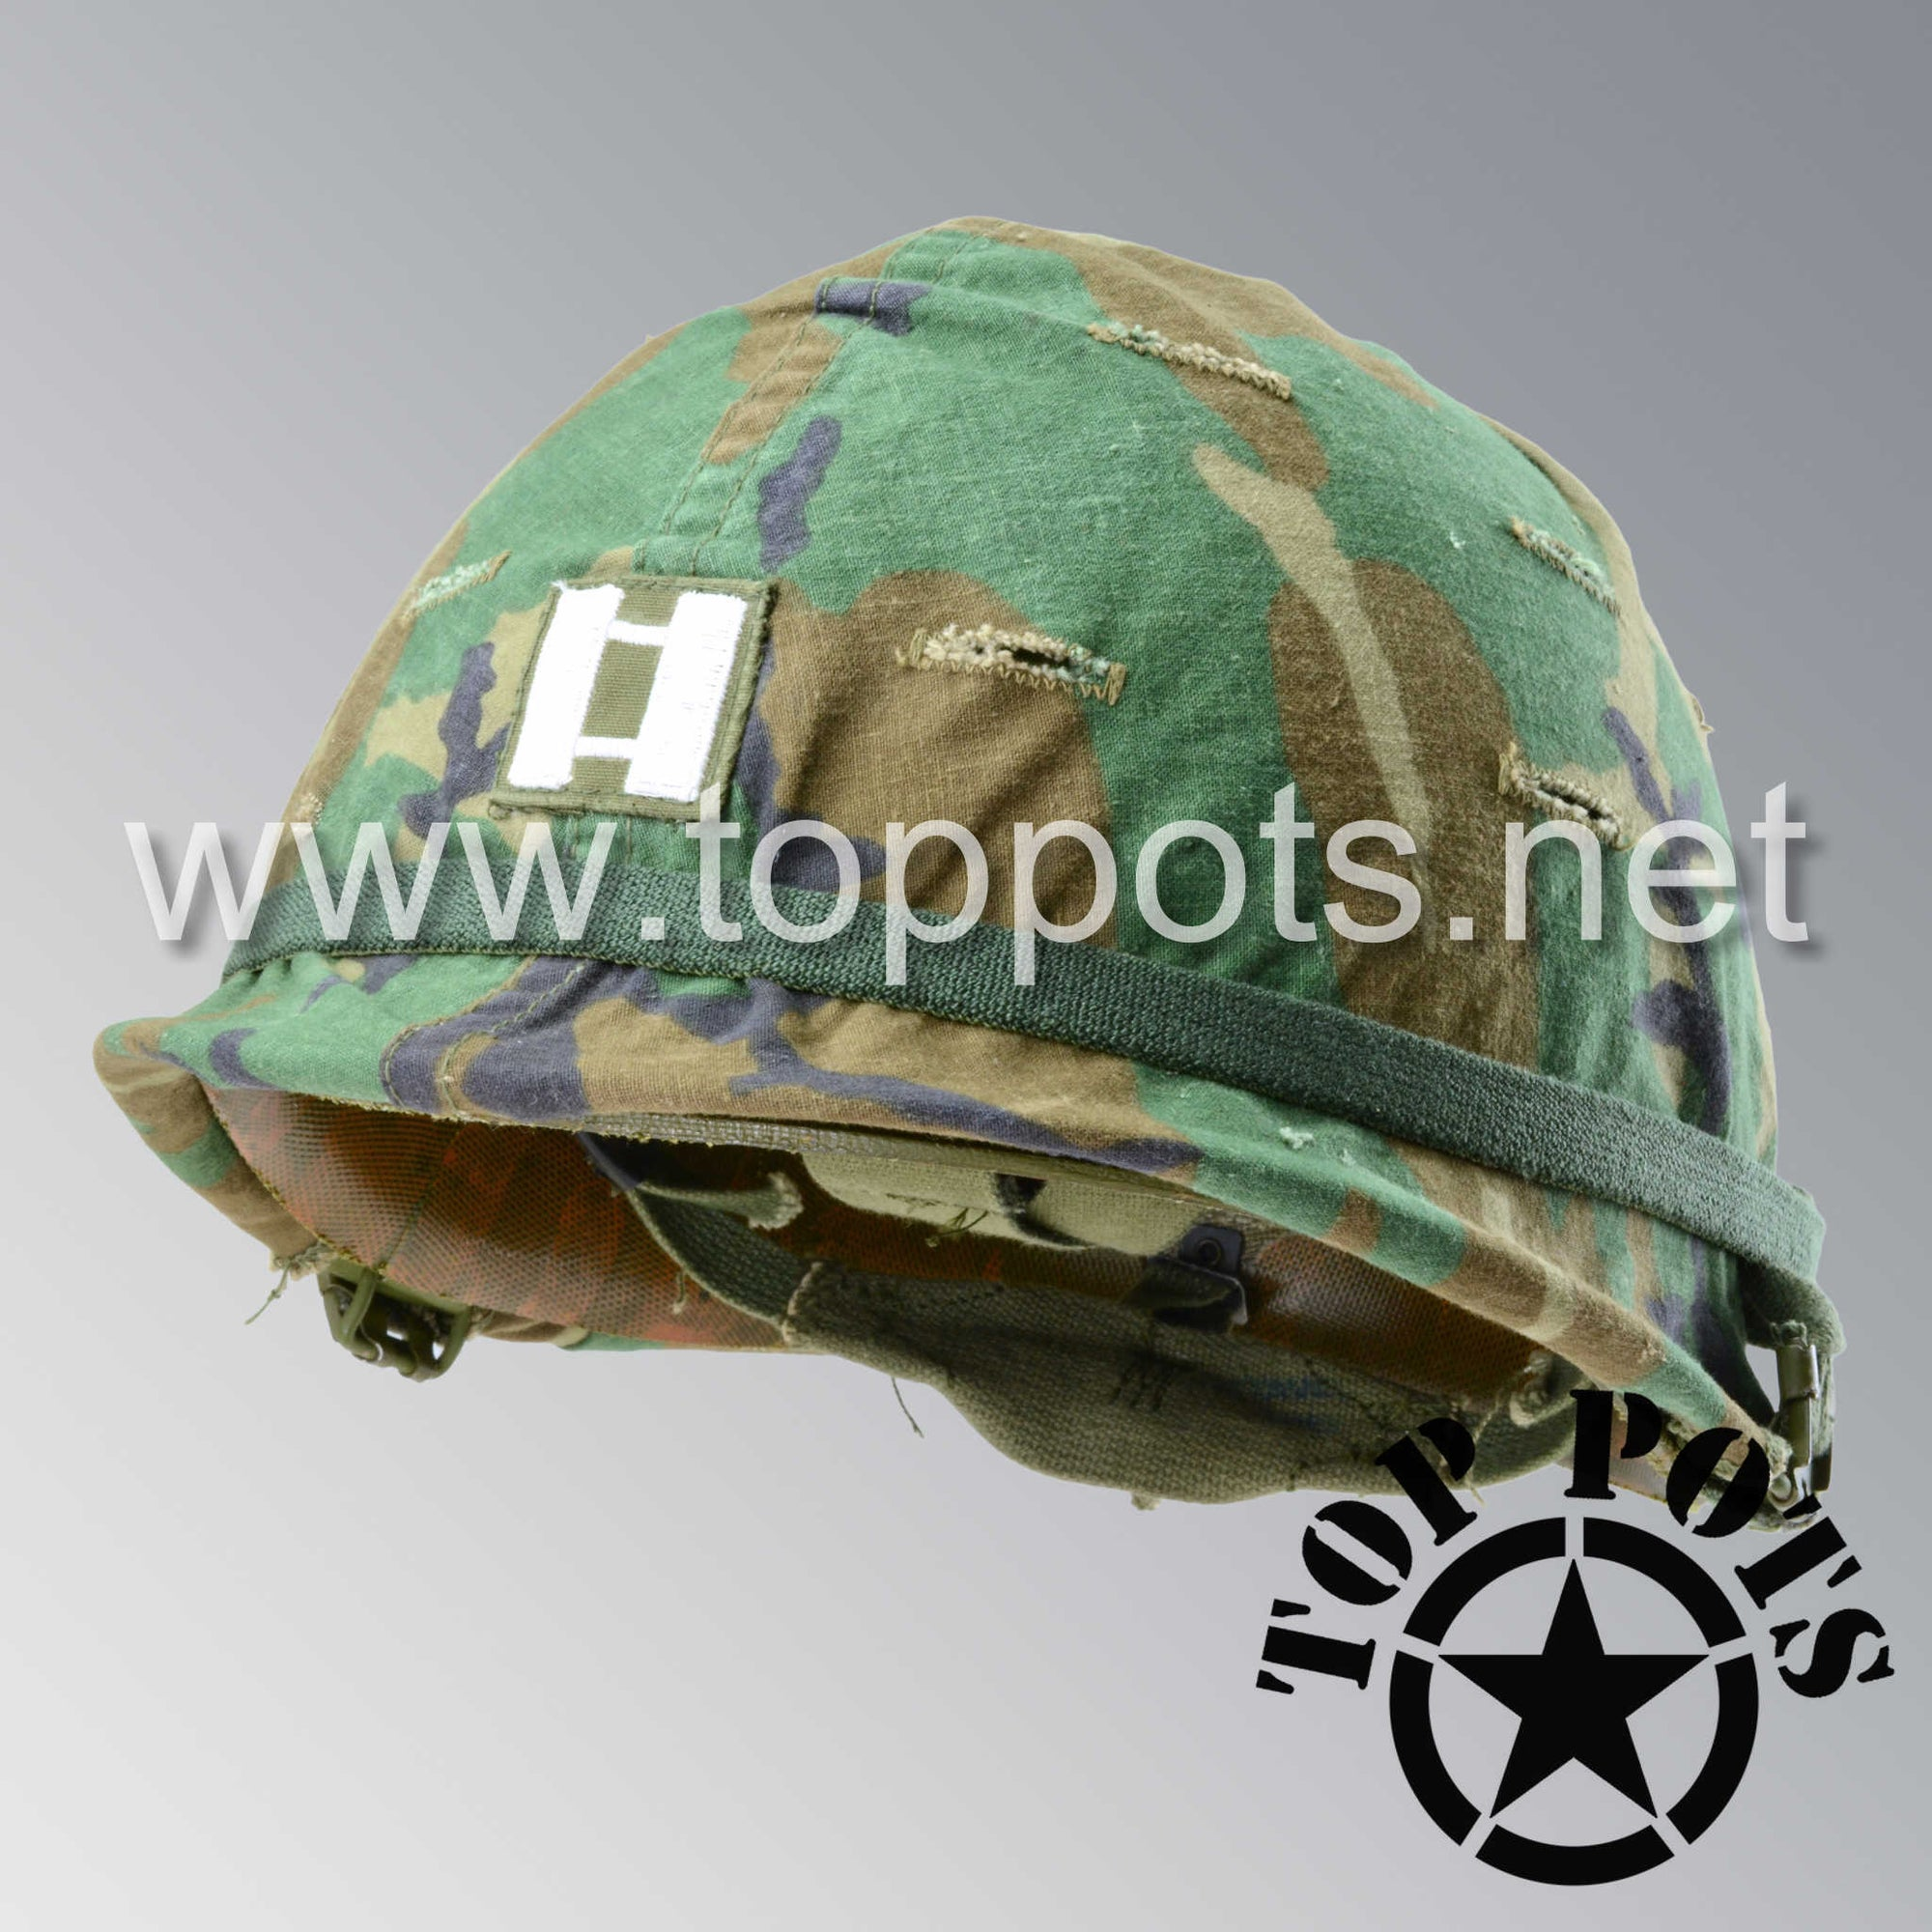 Image 1 of Post Vietnam US Army Original M1 Infantry Helmet Swivel Bale Shell and Liner with ERDL Woodland Camouflage Cover